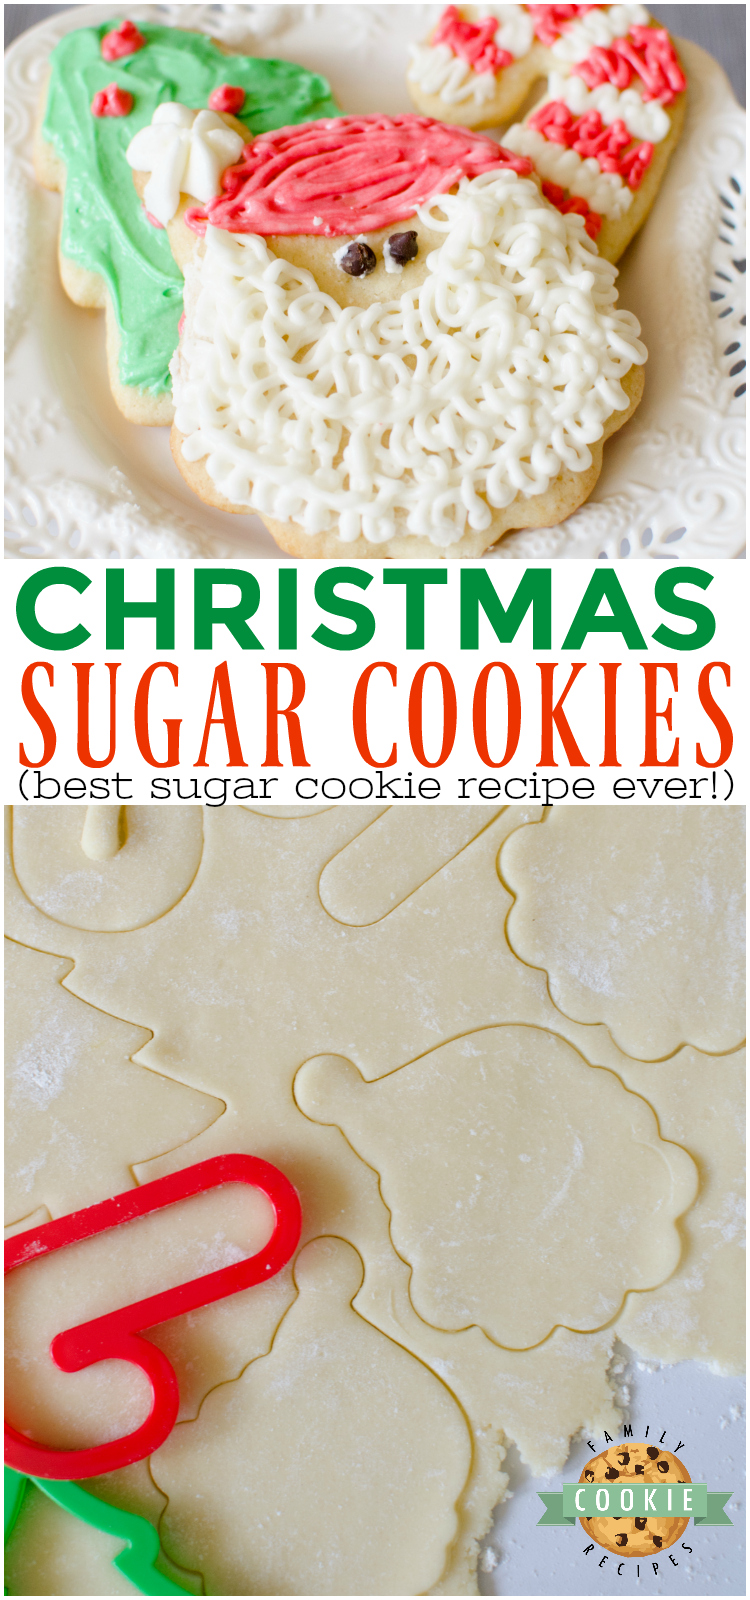 Christmas Sugar Cookies are a necessary holiday tradition at our house! This simple sugar cookie recipe produces soft, chewy and delicious cut-out cookies that can be decorated with a simple 4-ingredient buttercream frosting. via @familycookierecipes